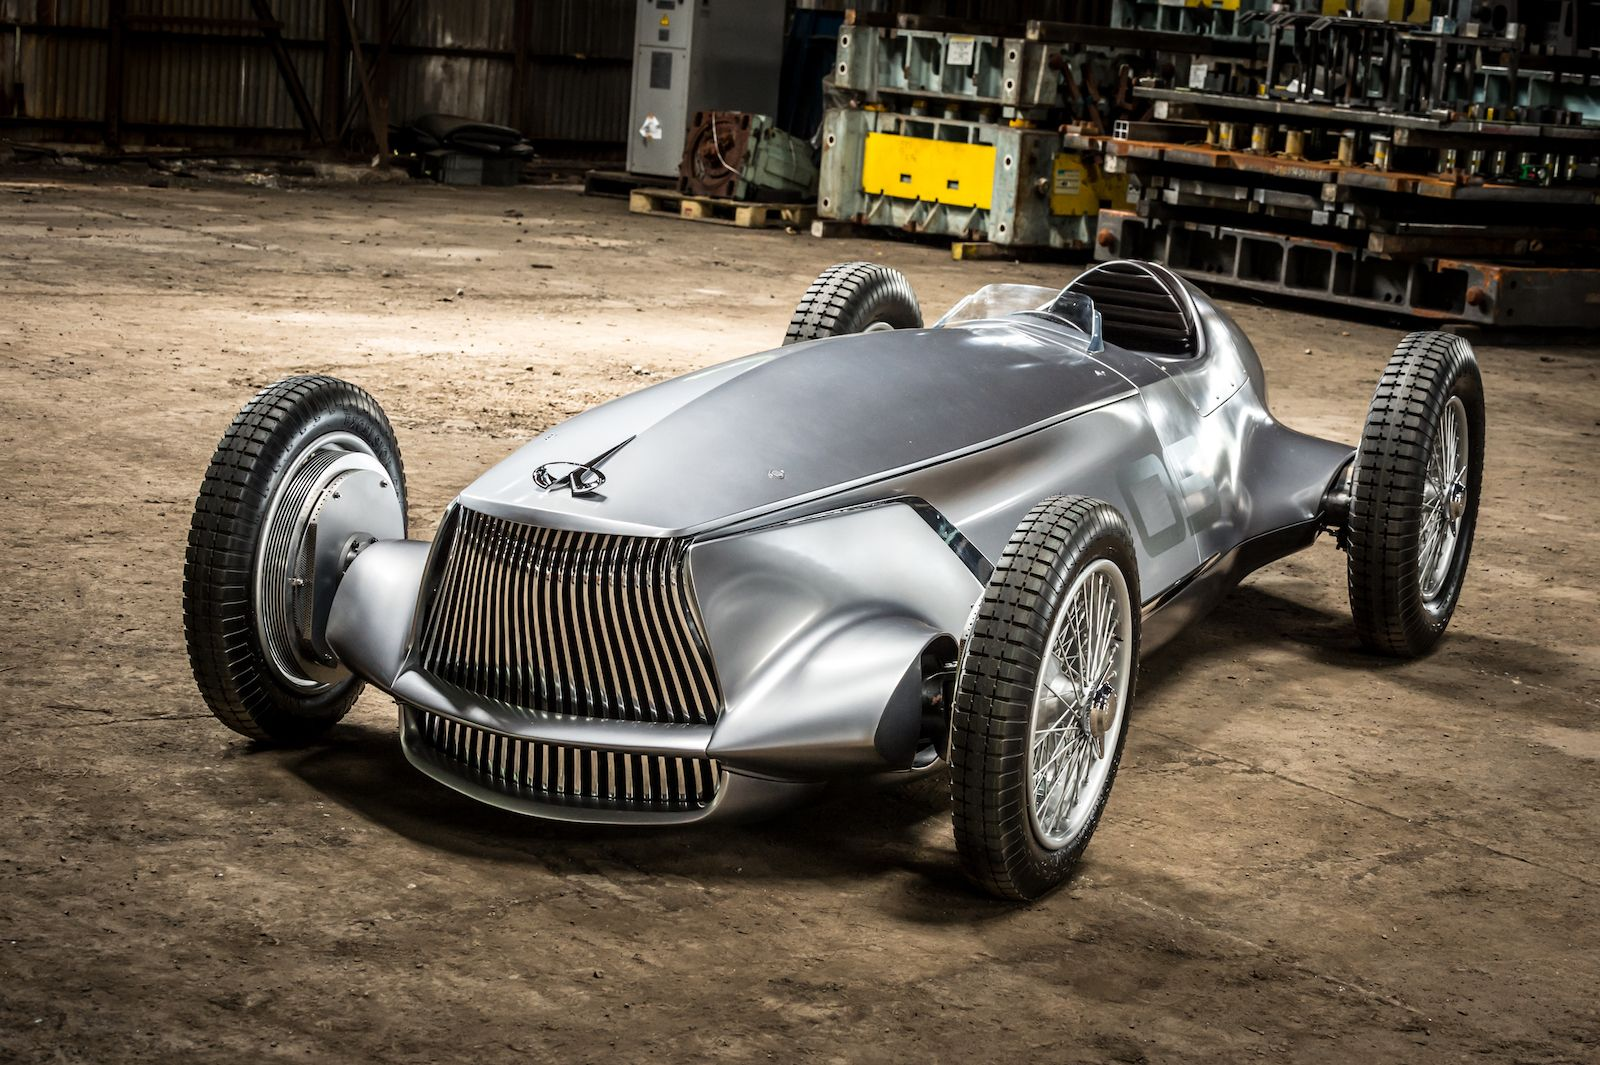 Infiniti Reveals Vintage Inspired Prototype 9 Concept Car Design